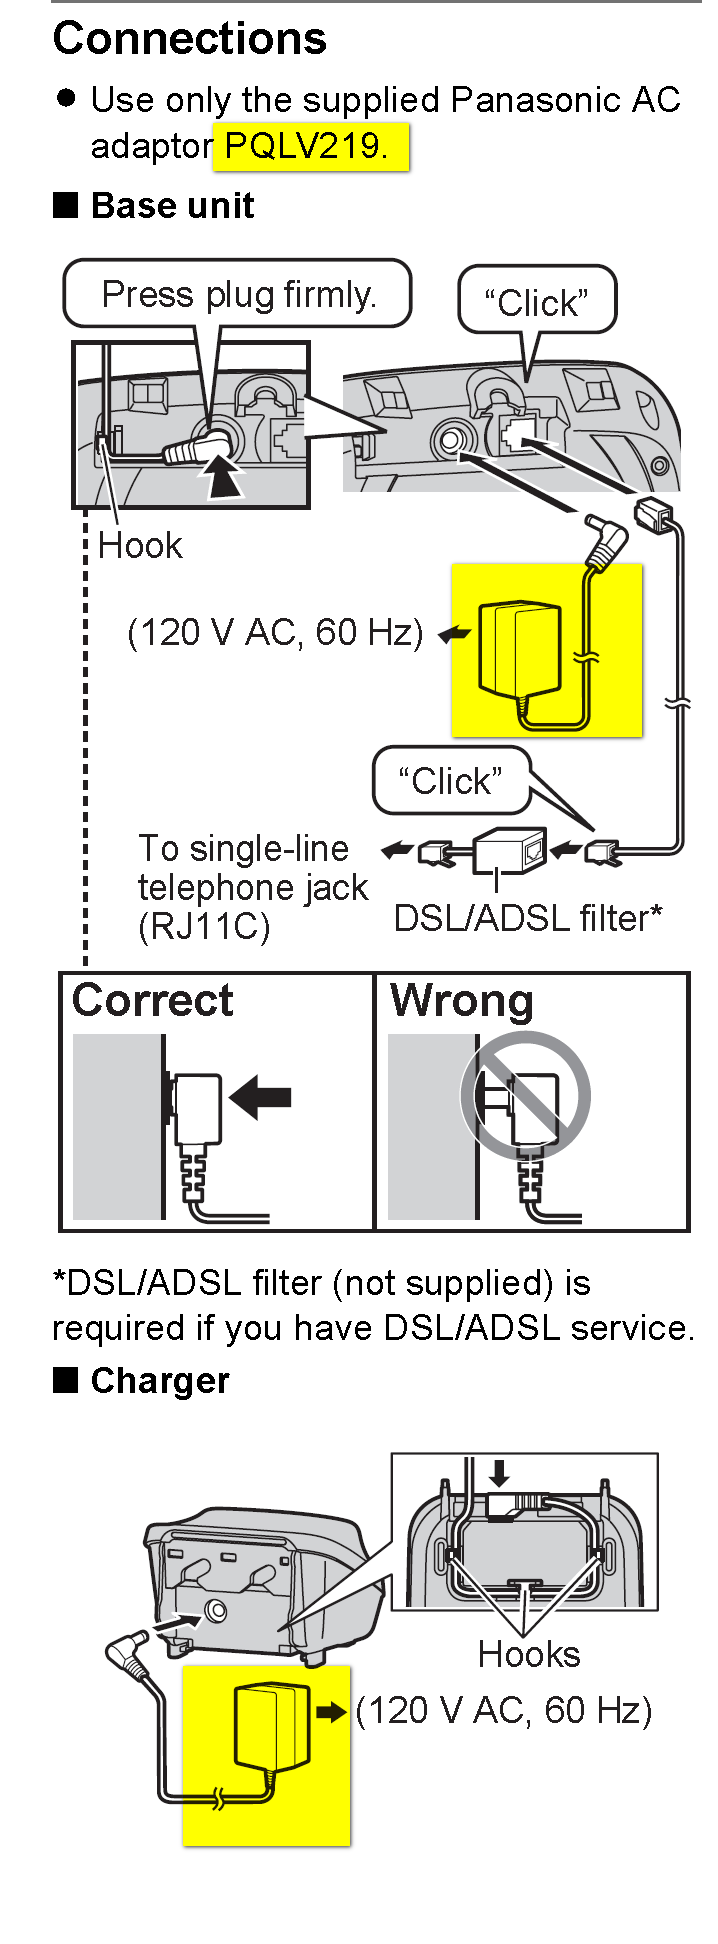 143a1f89-7f63-4318-a730-ff0758a93939_6512-Adapters-Connections.png